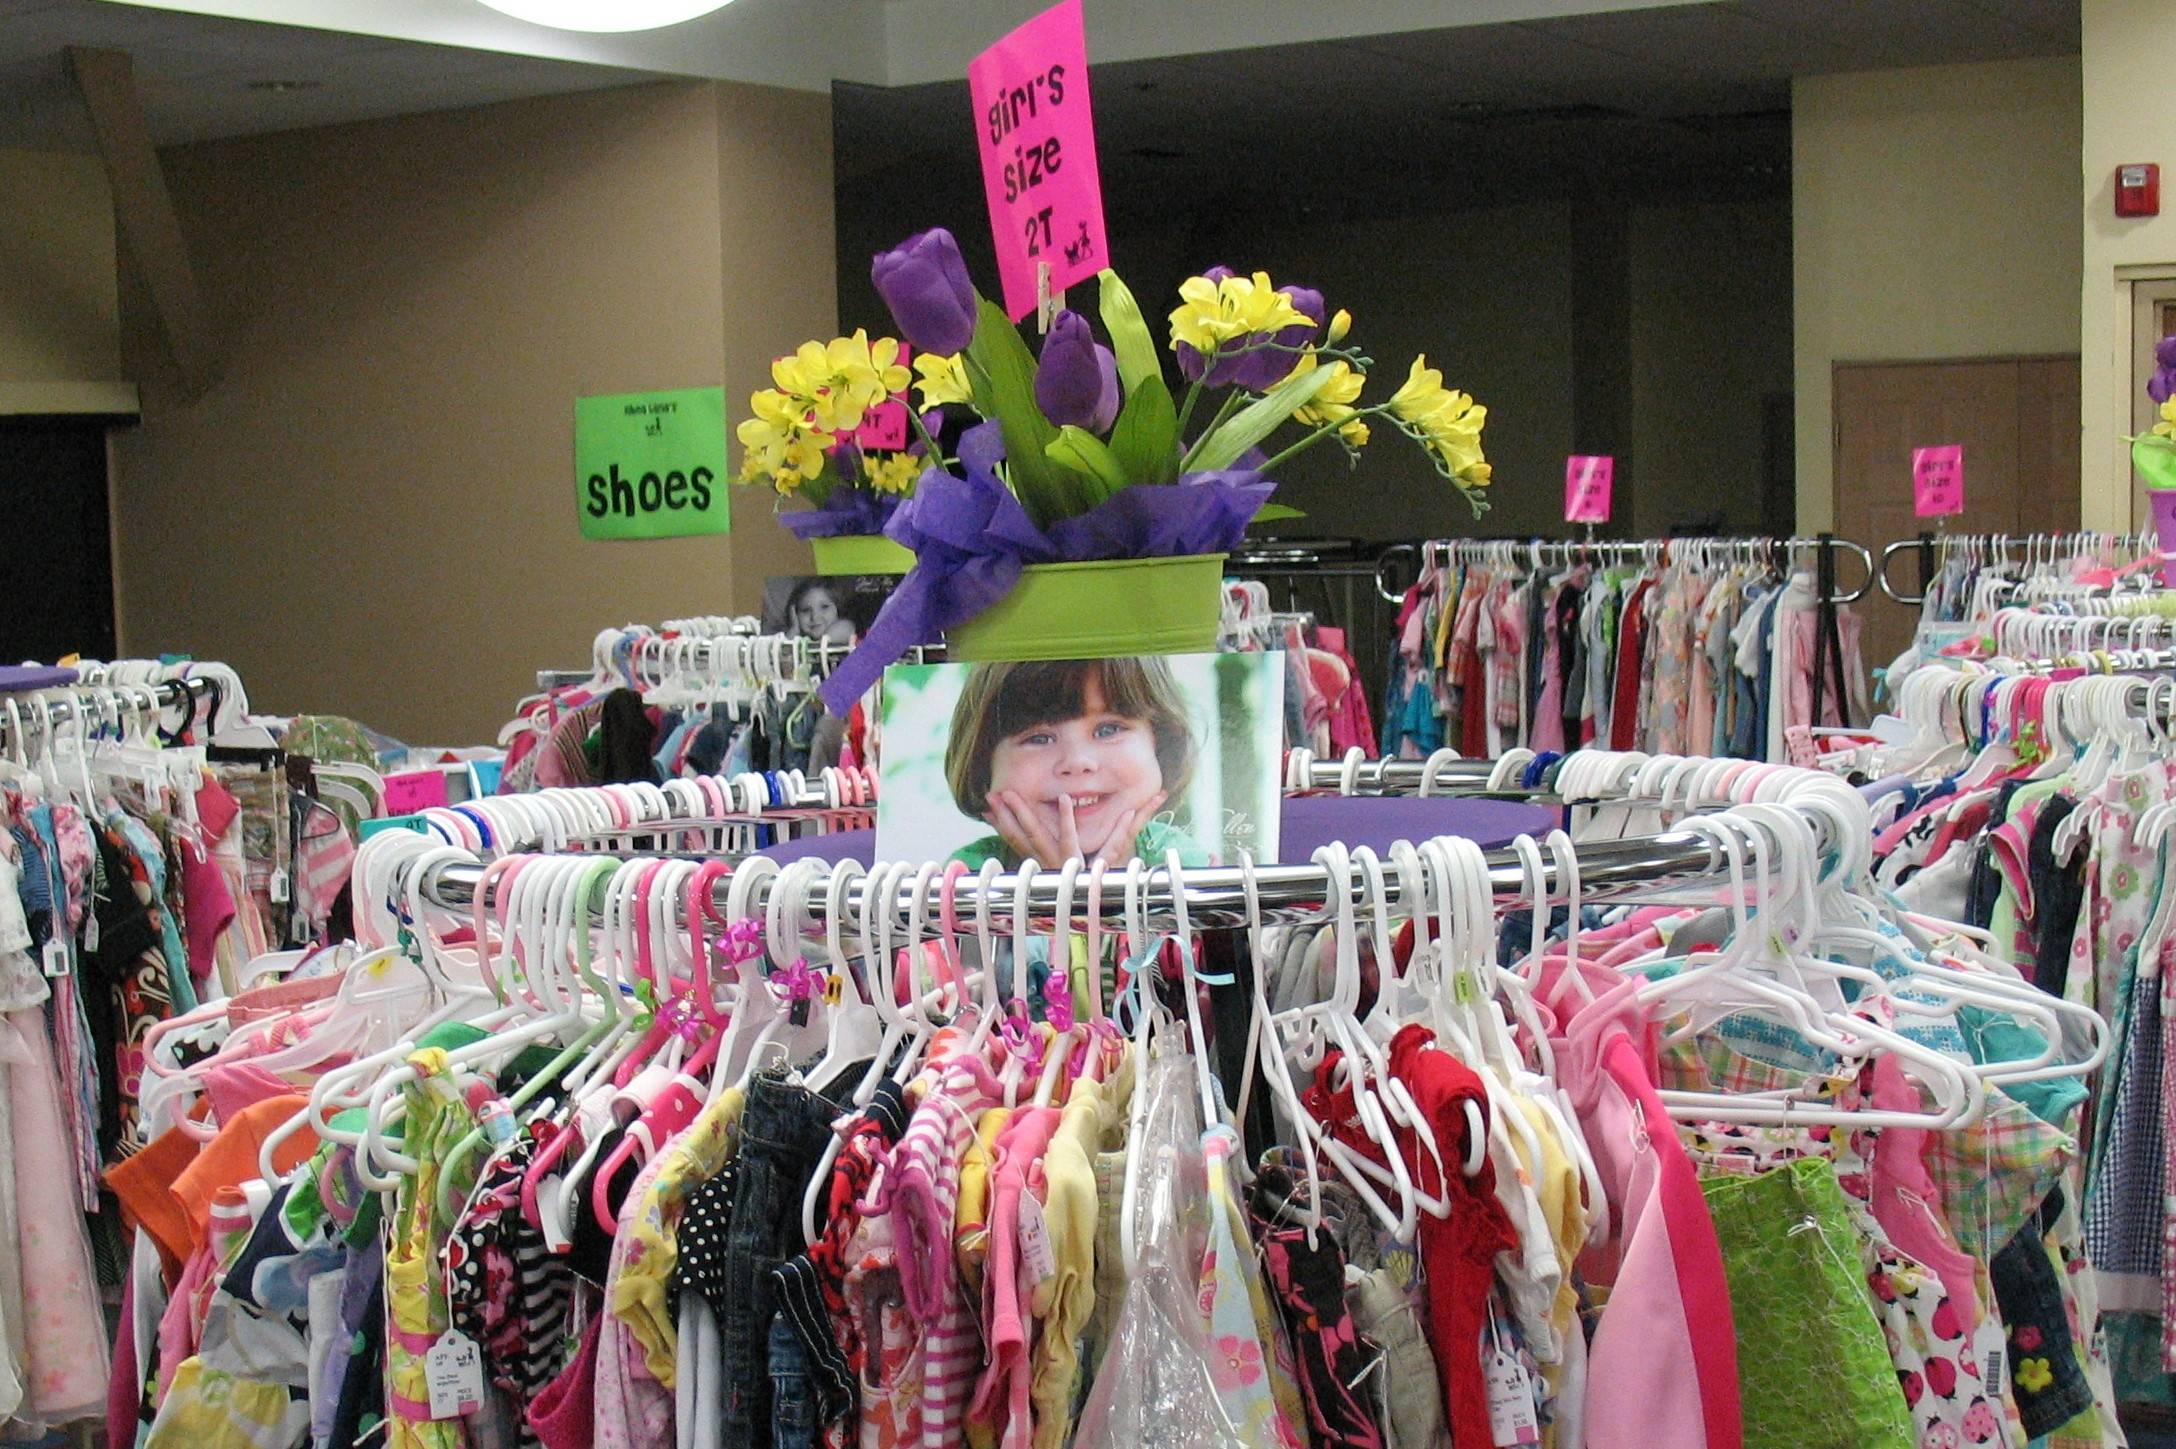 Rhea Lana's of West Chicagoland based in Addison is a resale concept franchise.